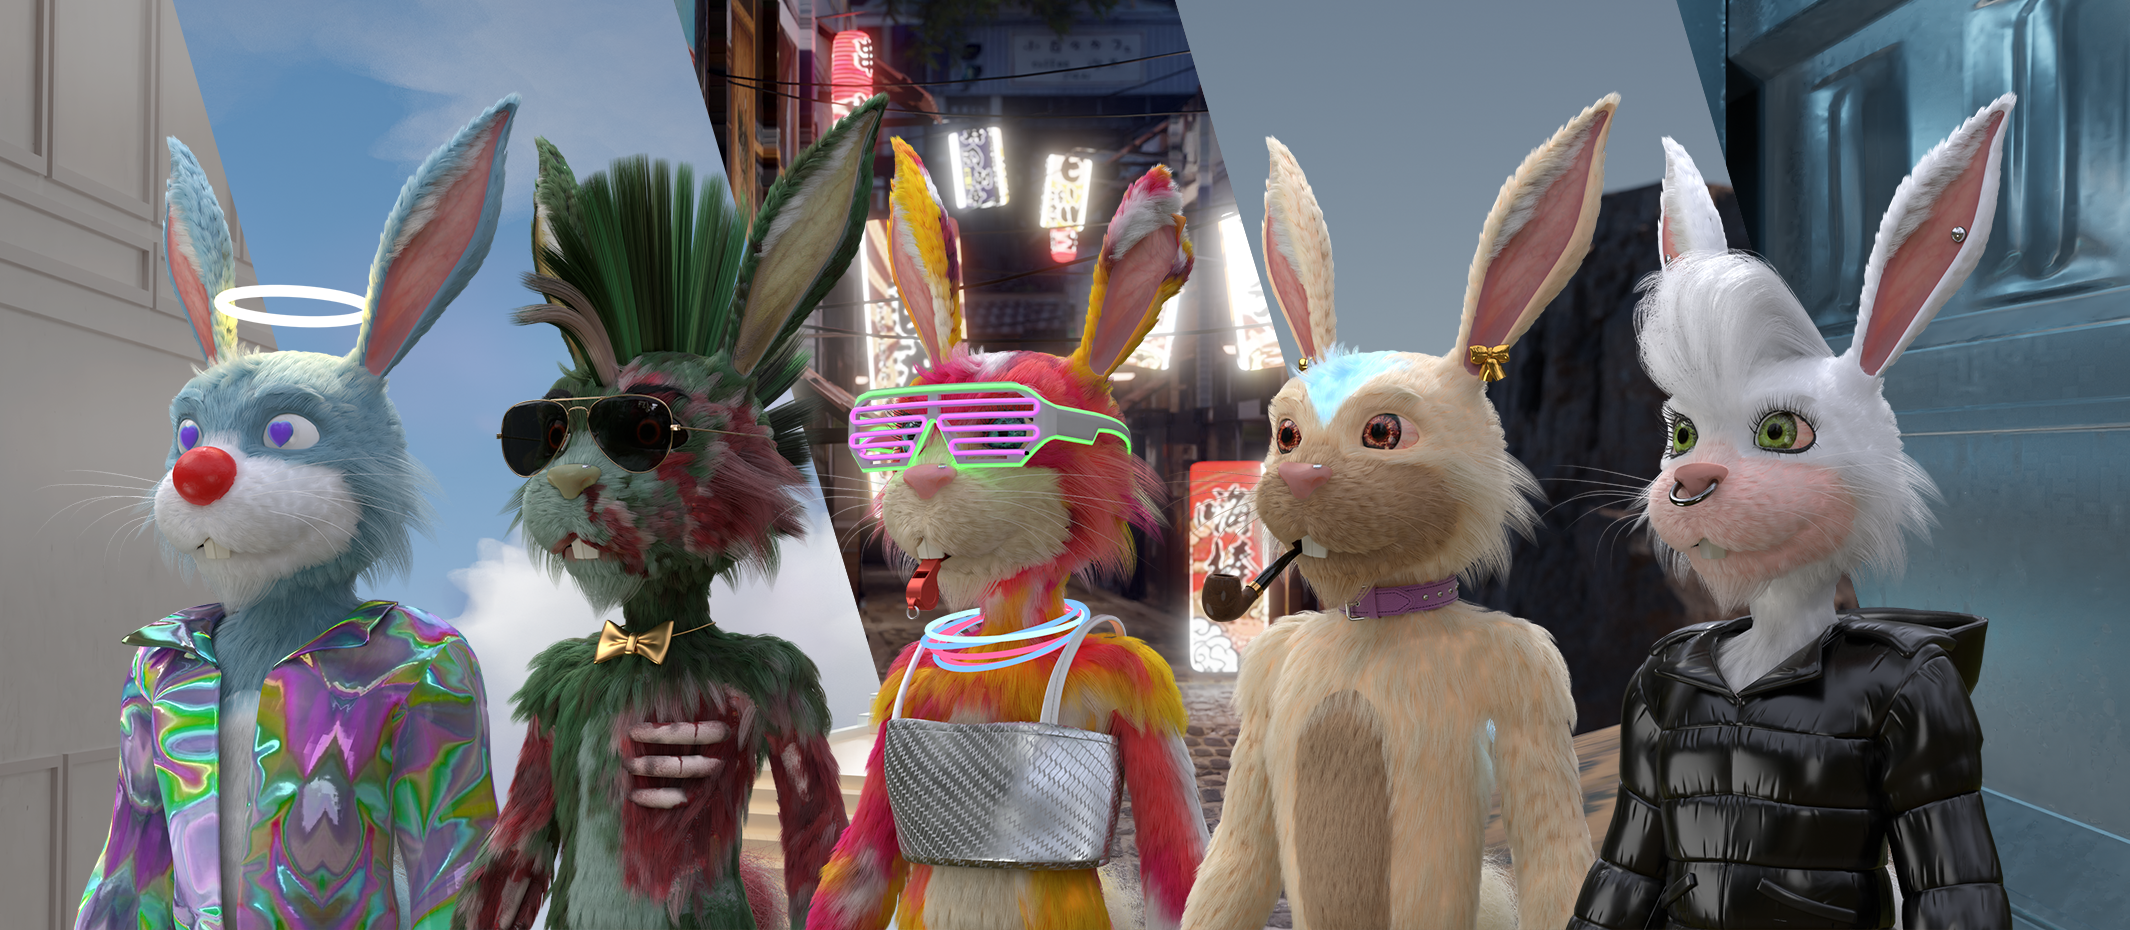 FLUF World: 3D rabbit avatars created by Kiwi team total US$42 million in sales in 5 weeks